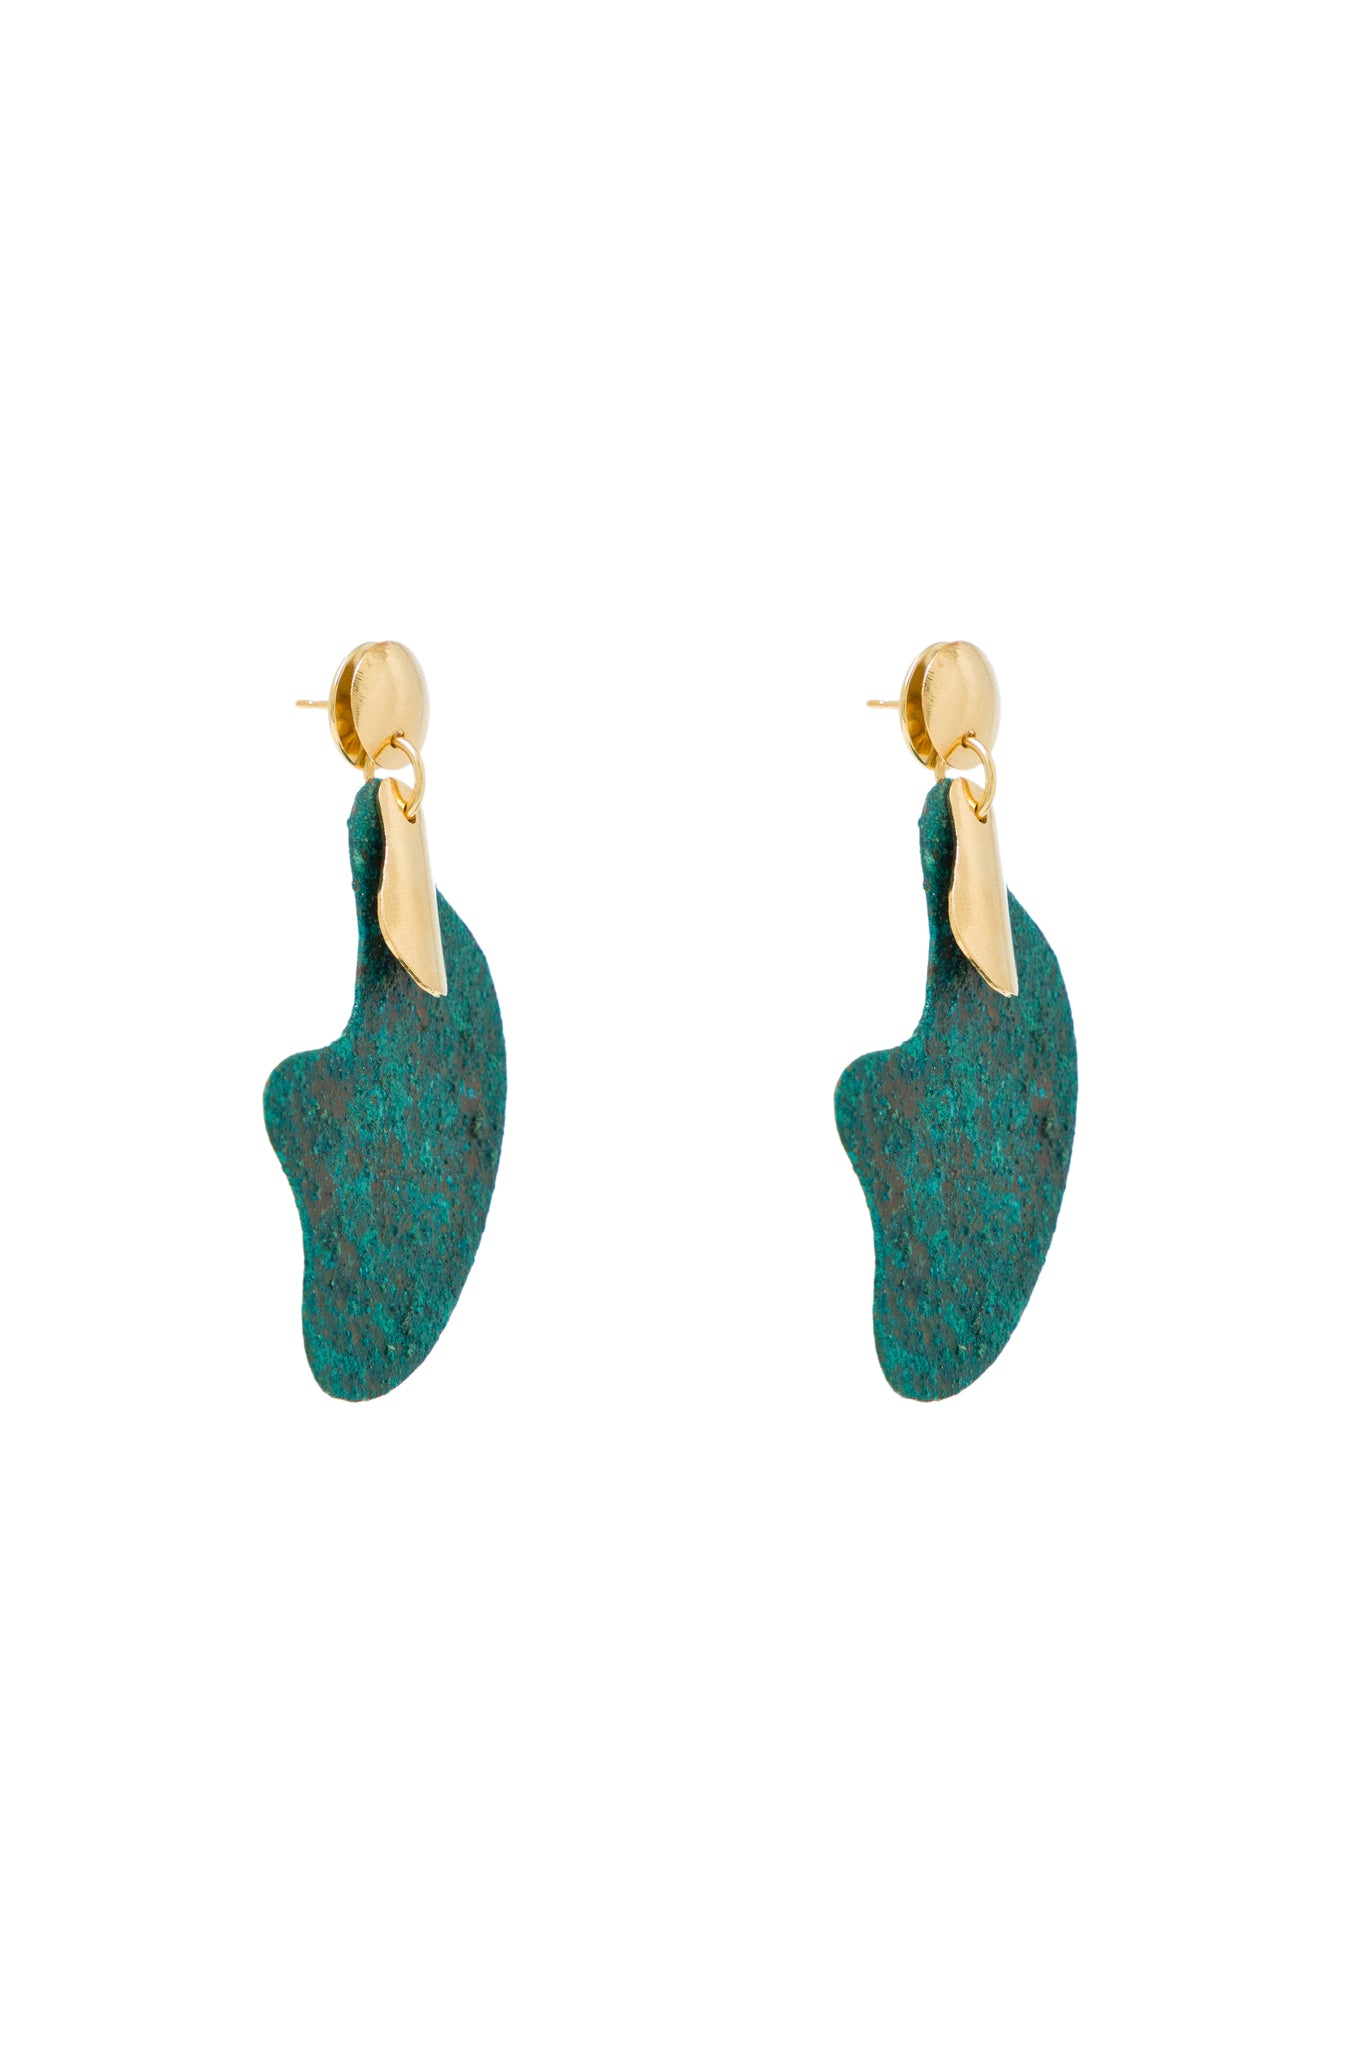 OXIDISED ORGANIC SHAPE EARRINGS